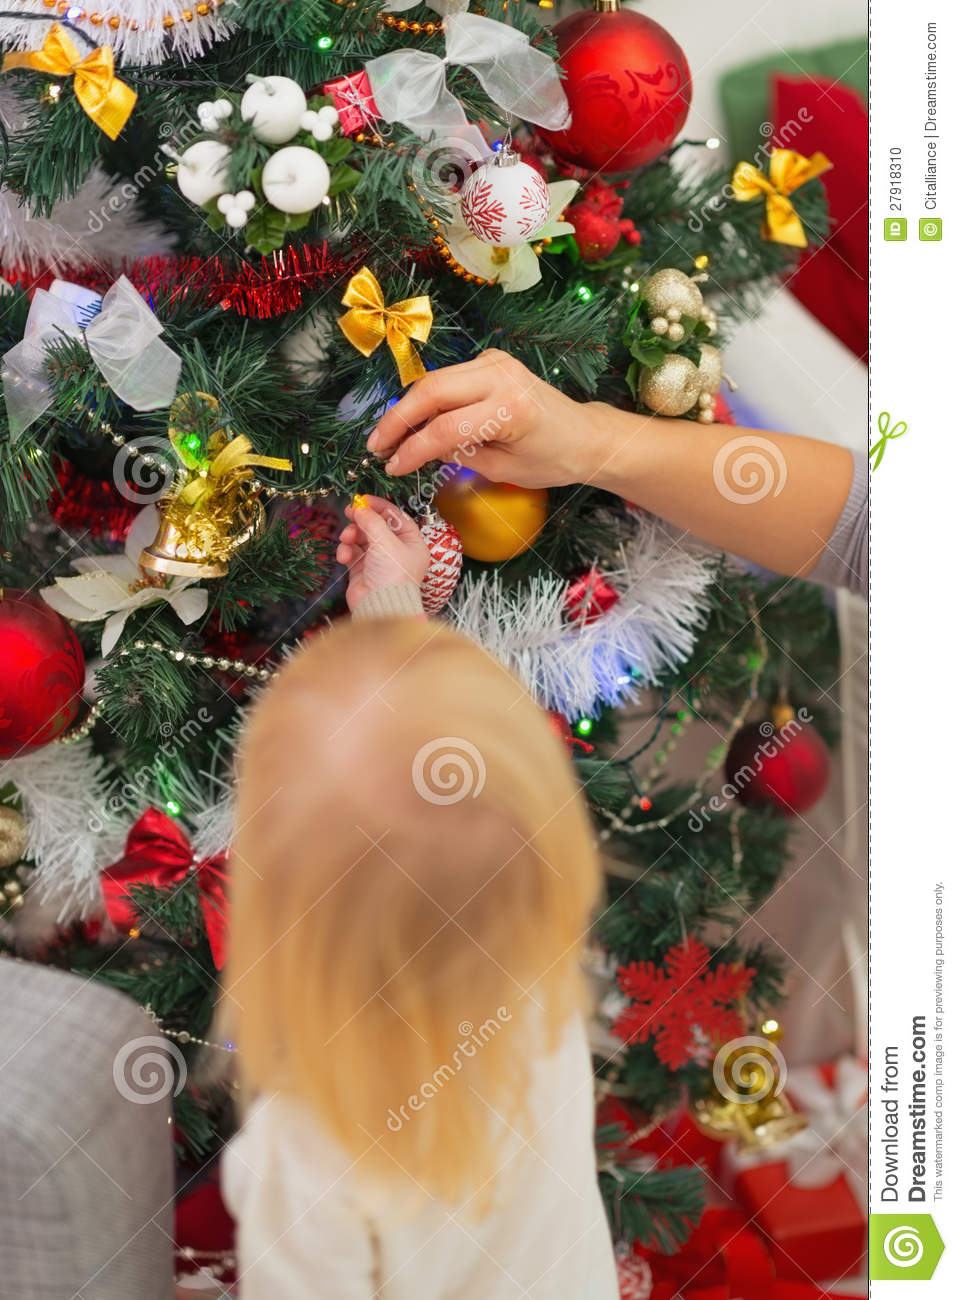 Baby decorating christmas tree rear view stock photo for Baby christmas tree decoration